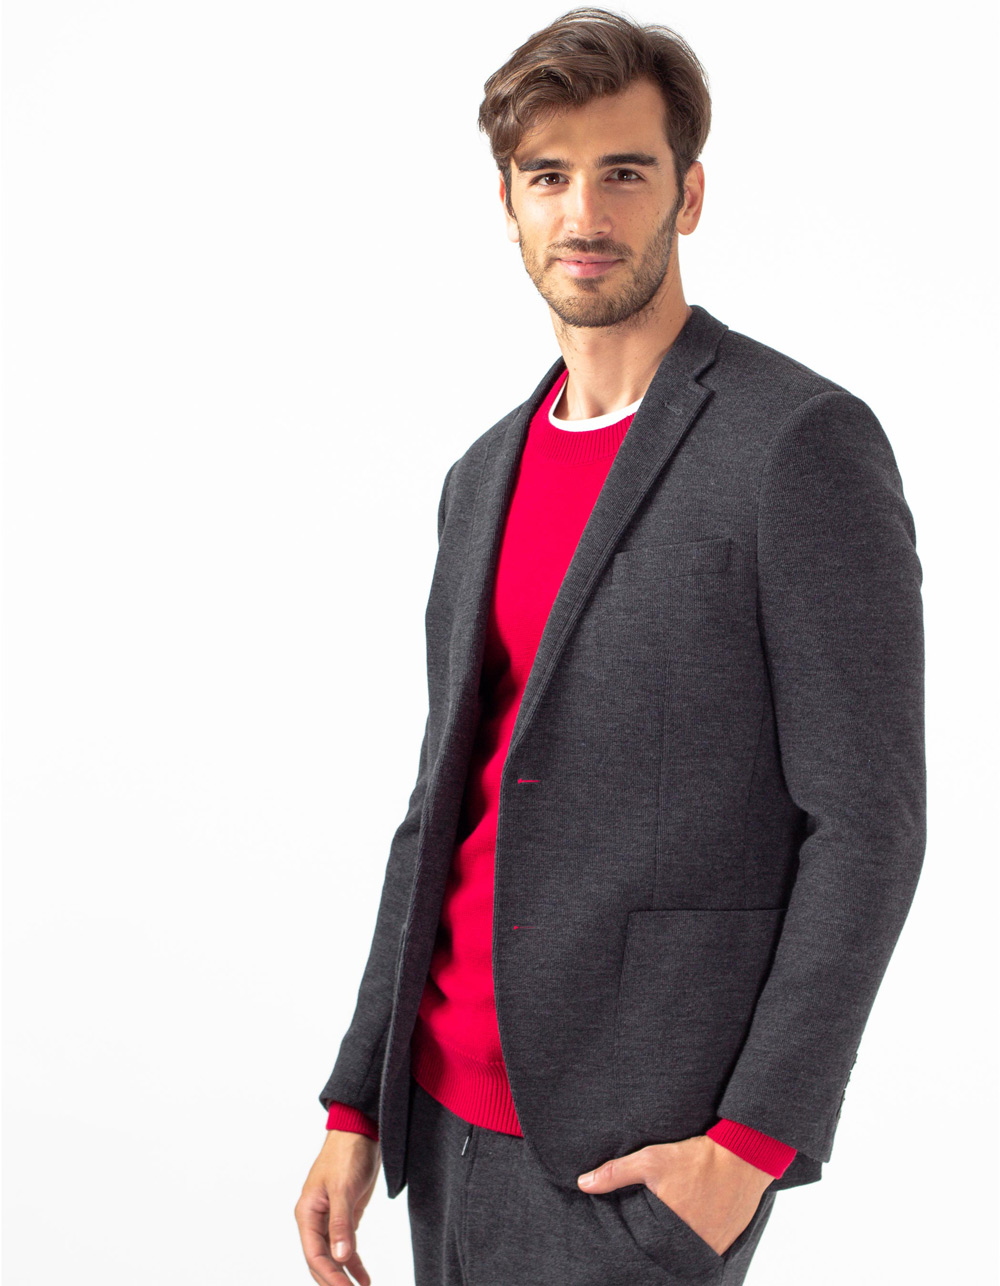 Charcoal grey knit blazer